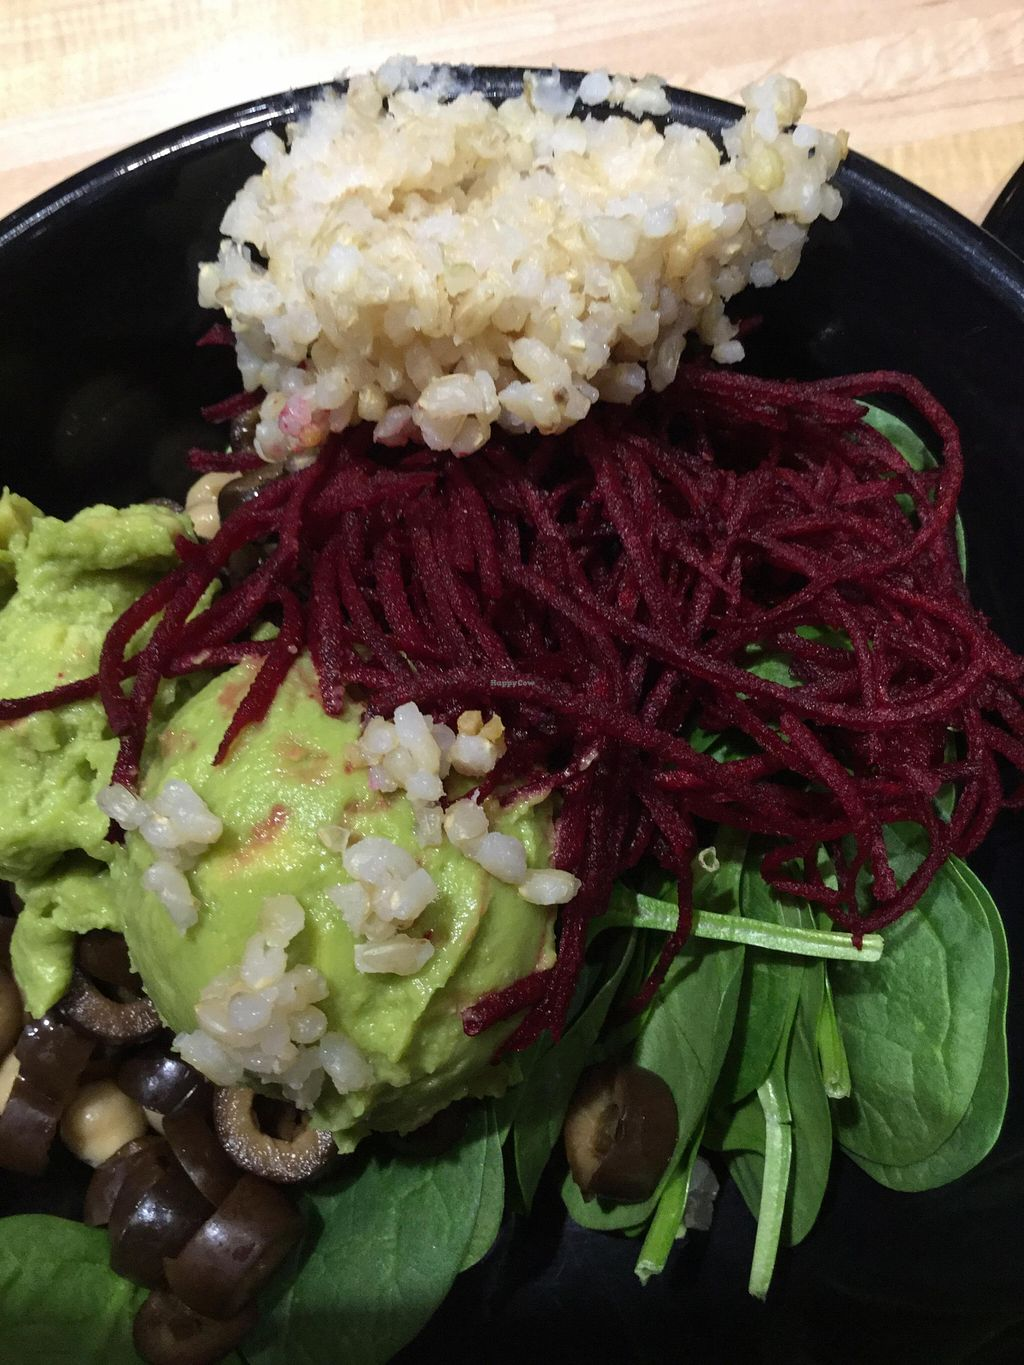 """Photo of The Good Food Store  by <a href=""""/members/profile/J%20and%20J"""">J and J</a> <br/>Make your own salad <br/> February 27, 2016  - <a href='/contact/abuse/image/2185/137998'>Report</a>"""